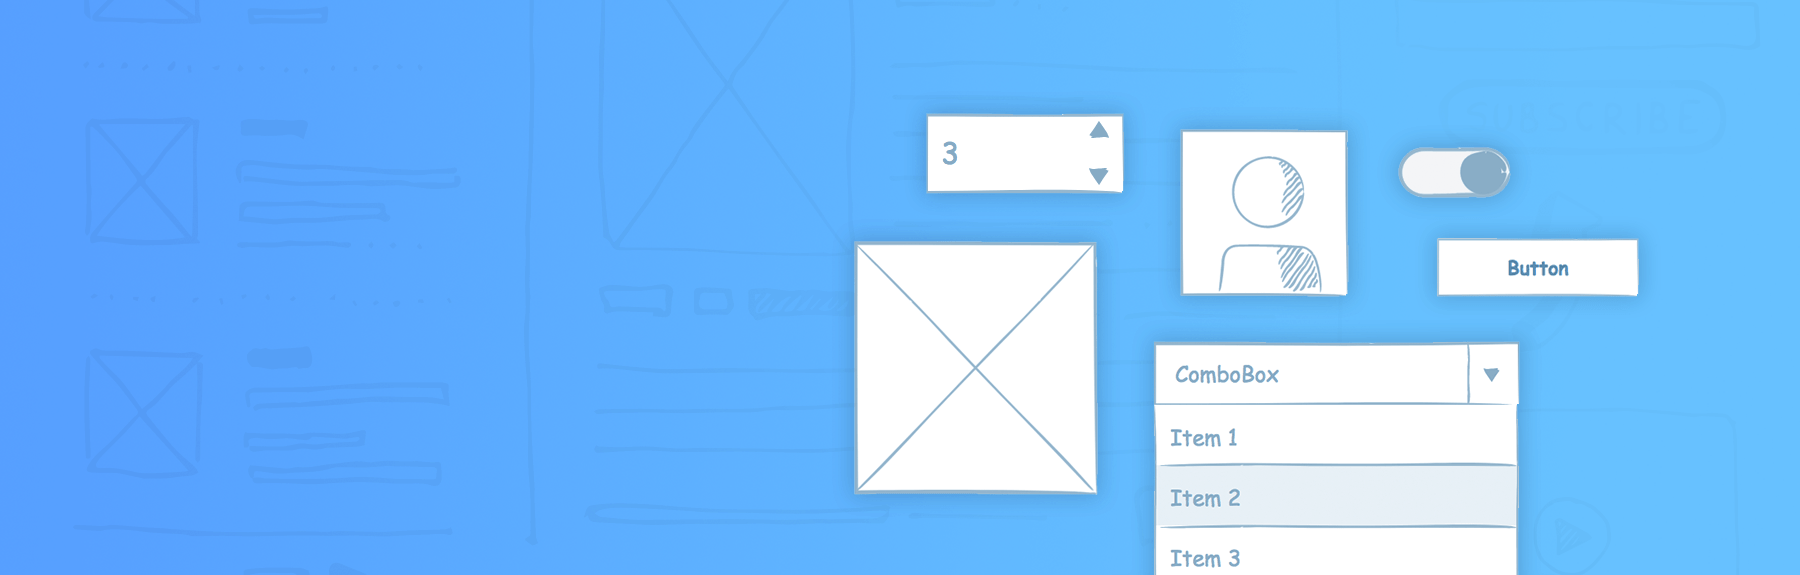 Sharper Prototyping Tools